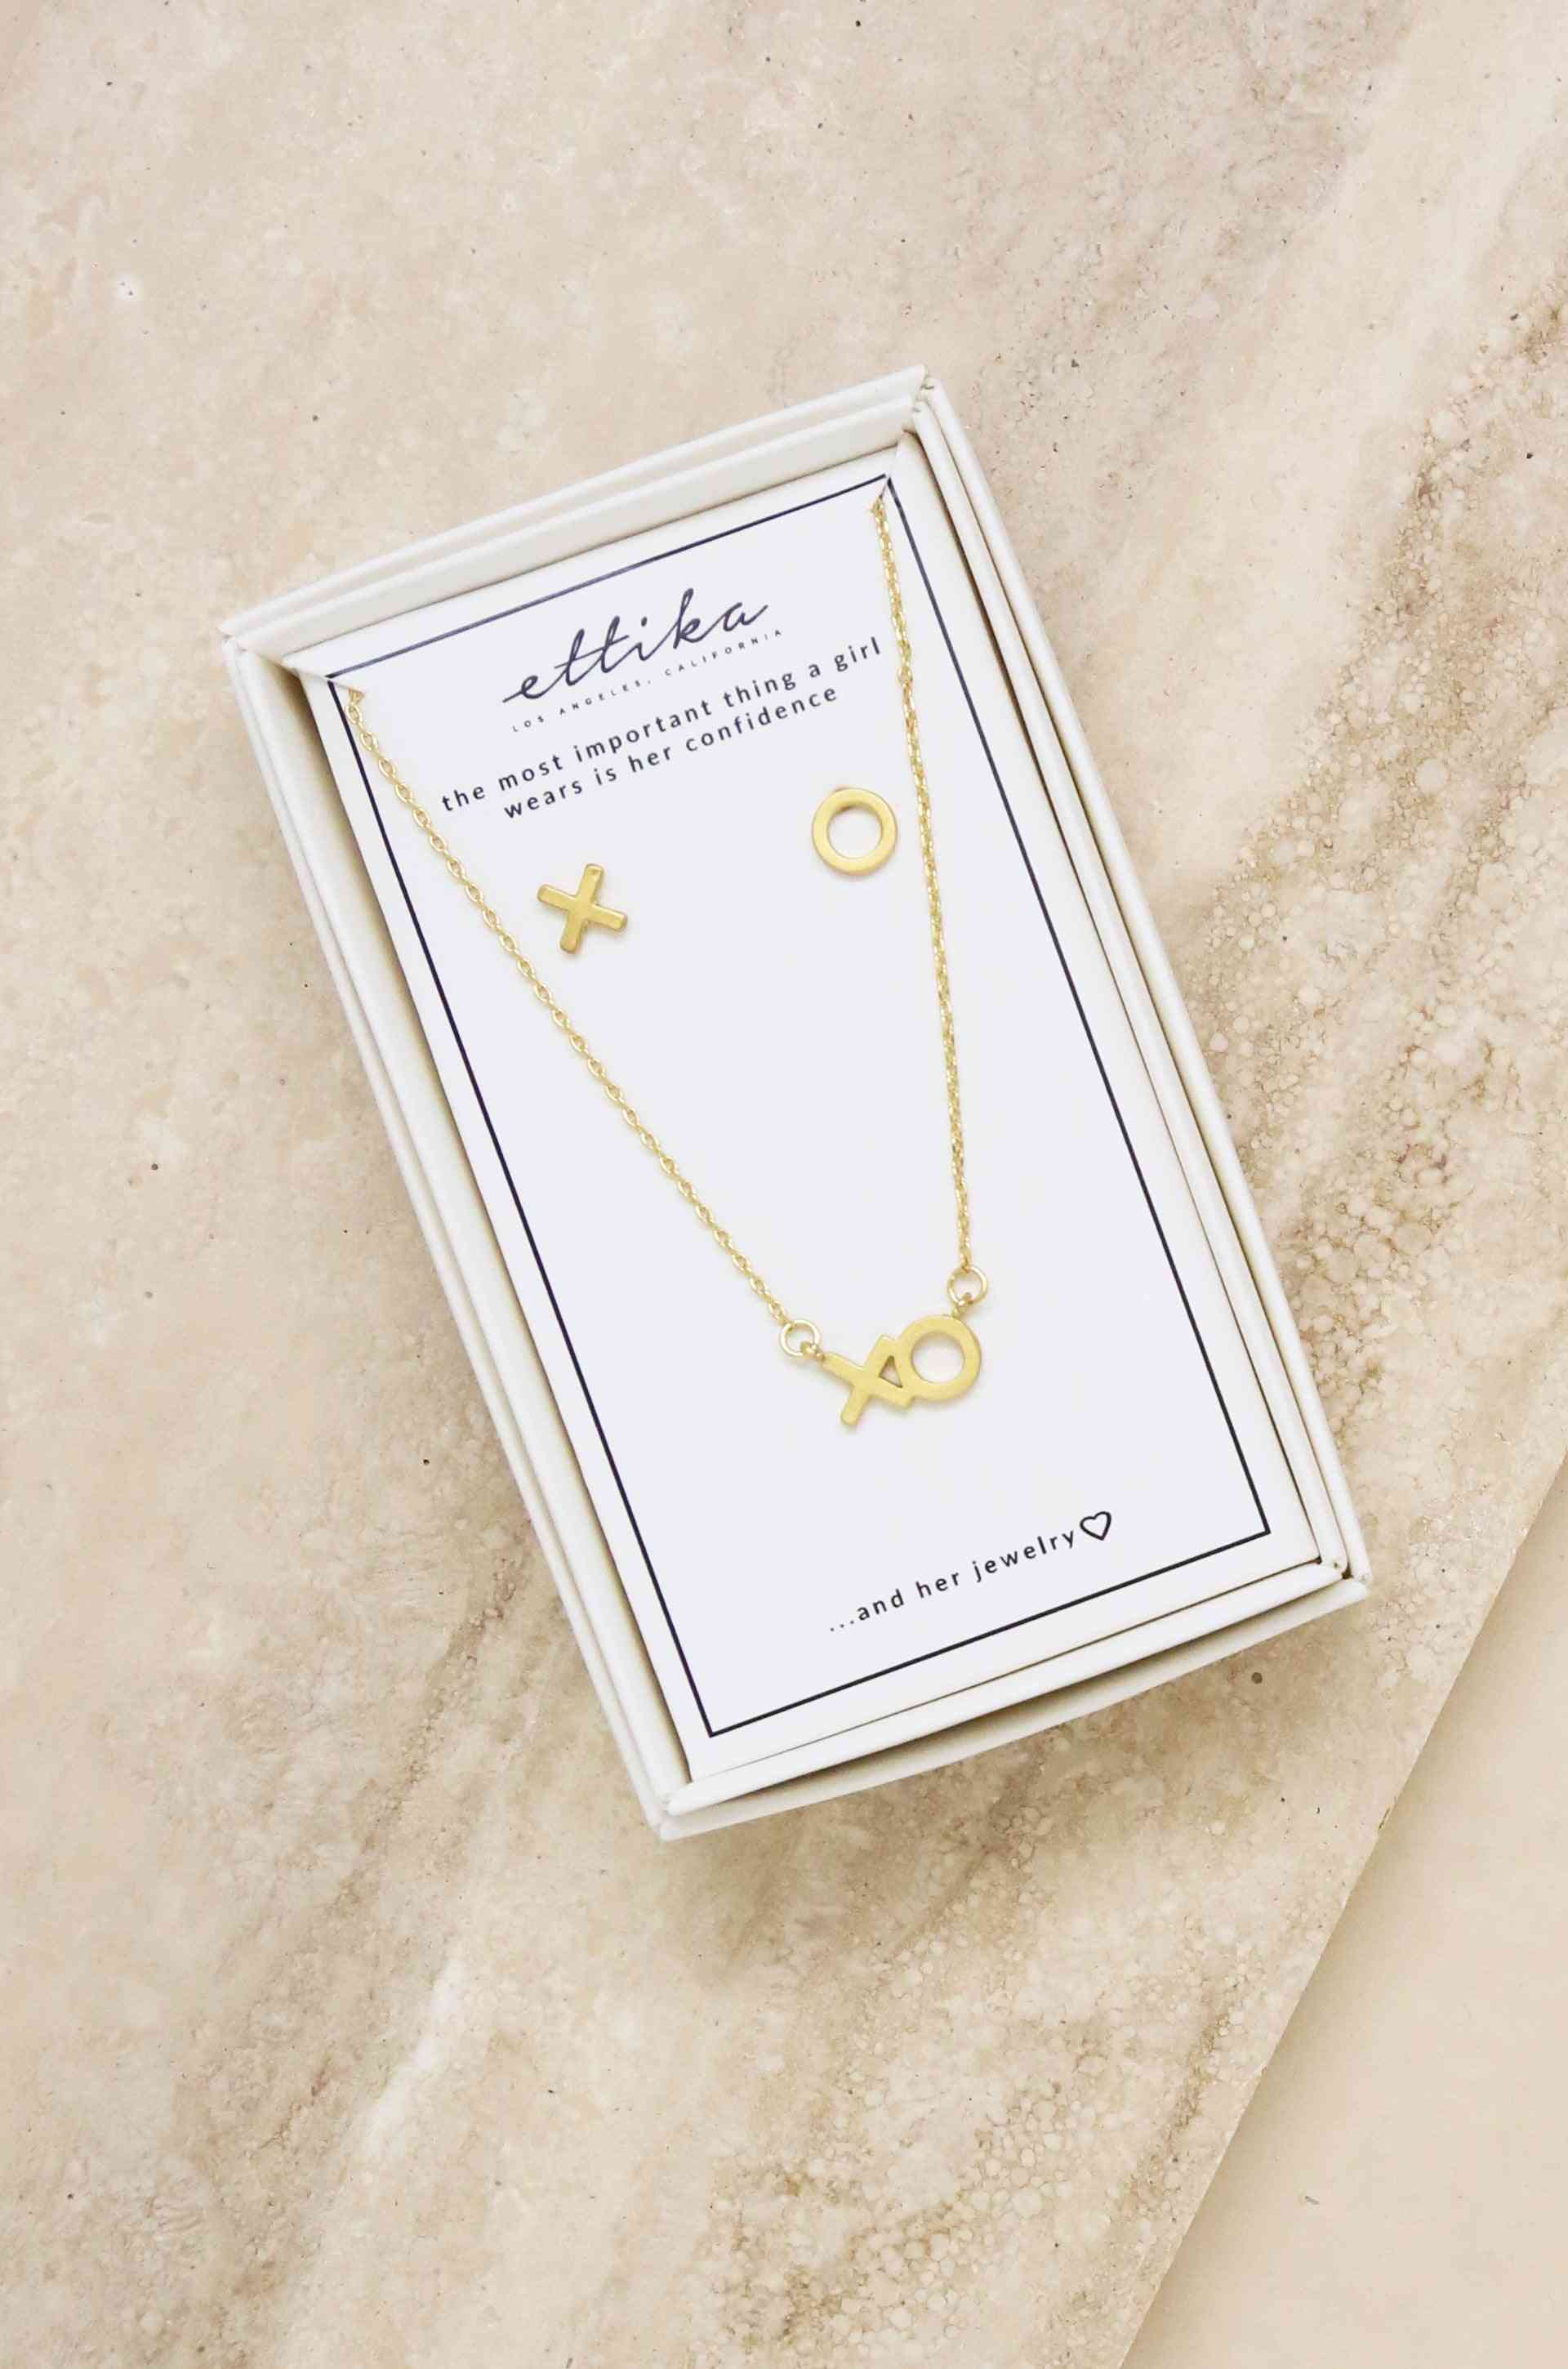 18k Gold Plated Xo Necklace & Earring Stud Boxed Set